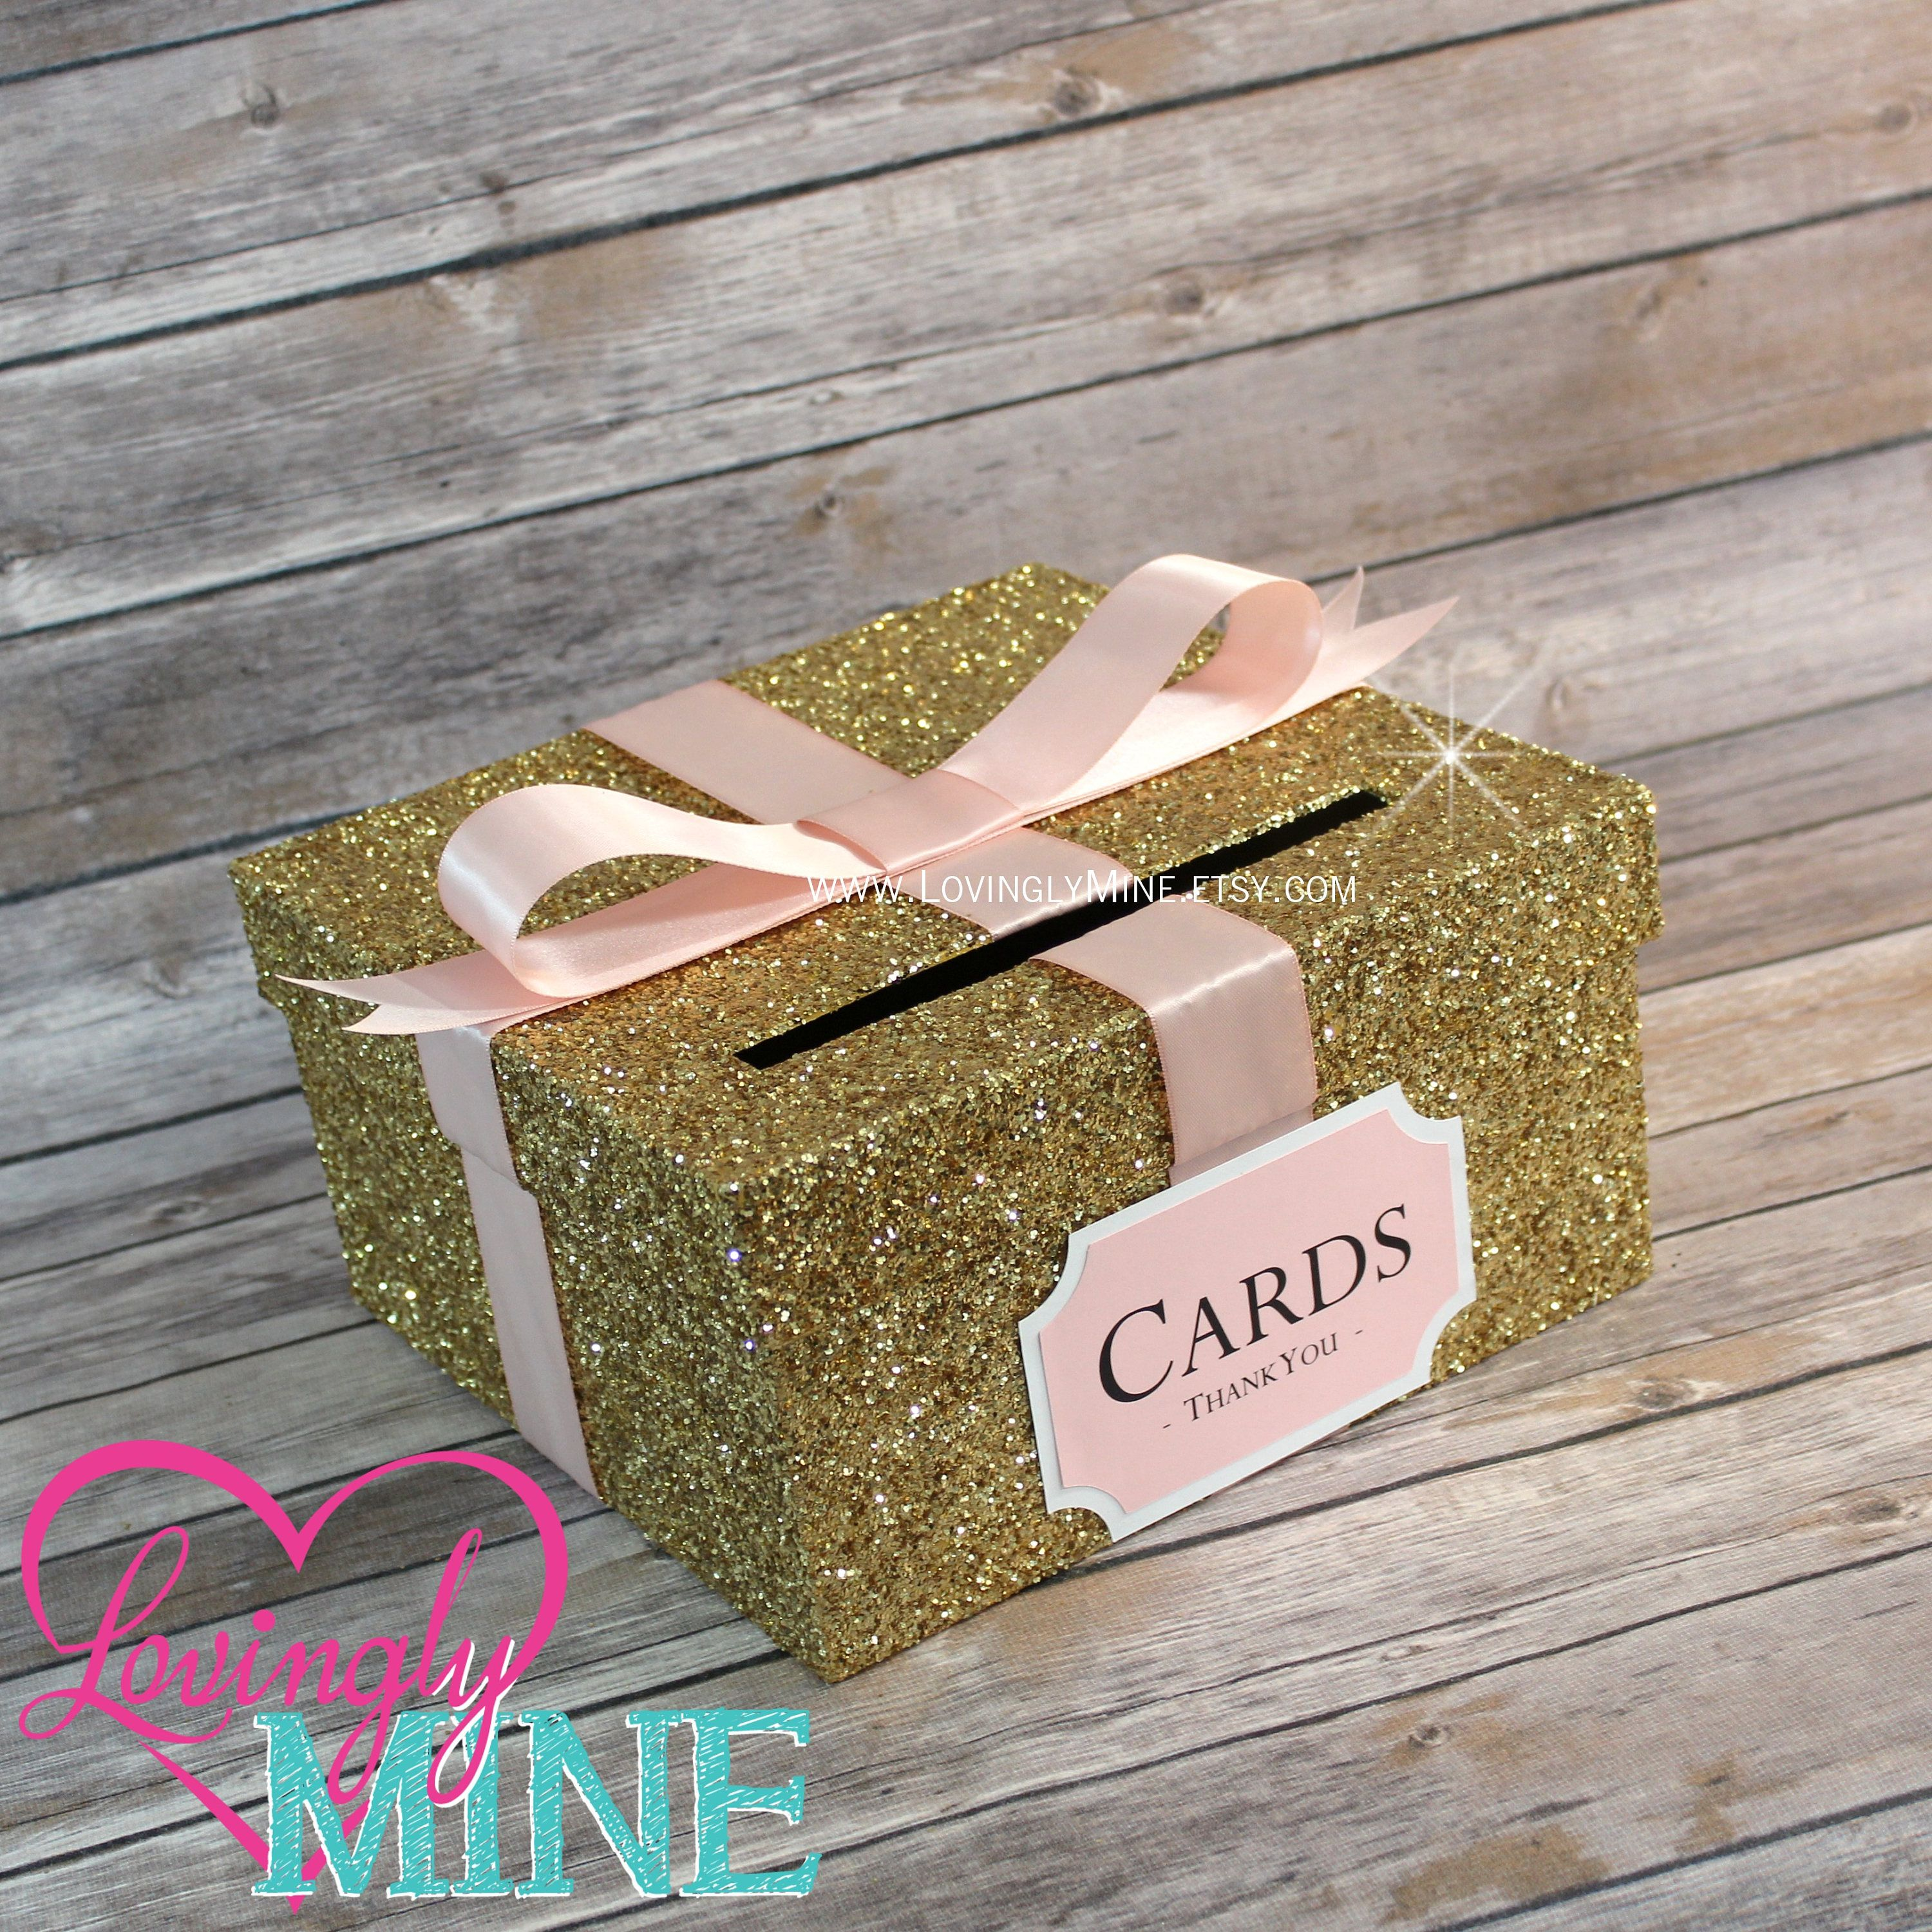 Card Box Glitter Gold Blush Pink White Gift Money For Any Event Baby Shower Wedding Bridal Birthday Party Graduation By Lovinglymine